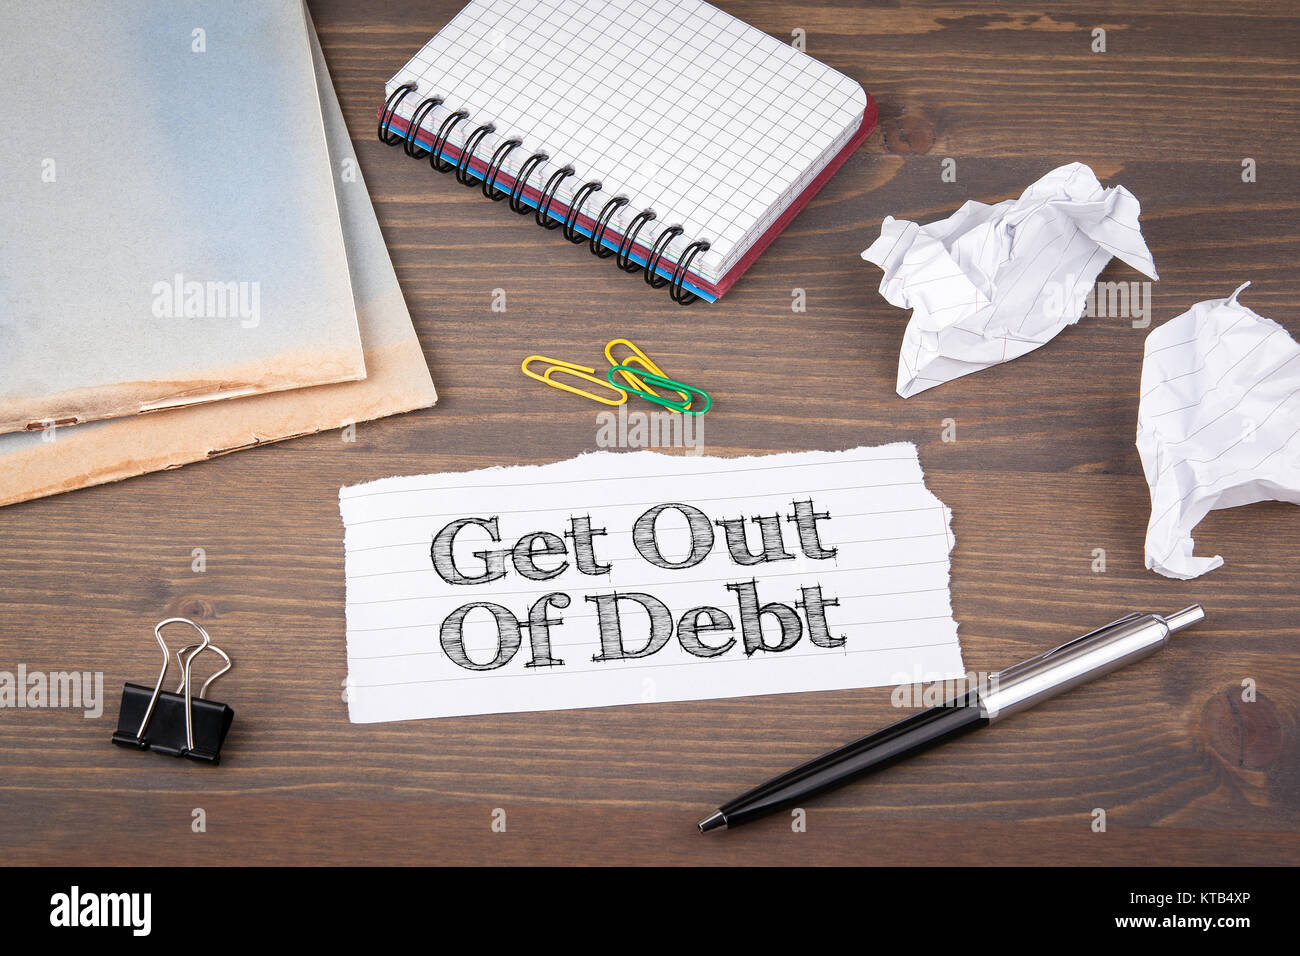 Get Out of Debt. paper sheet from the booklet on the wooden table. - Stock Image